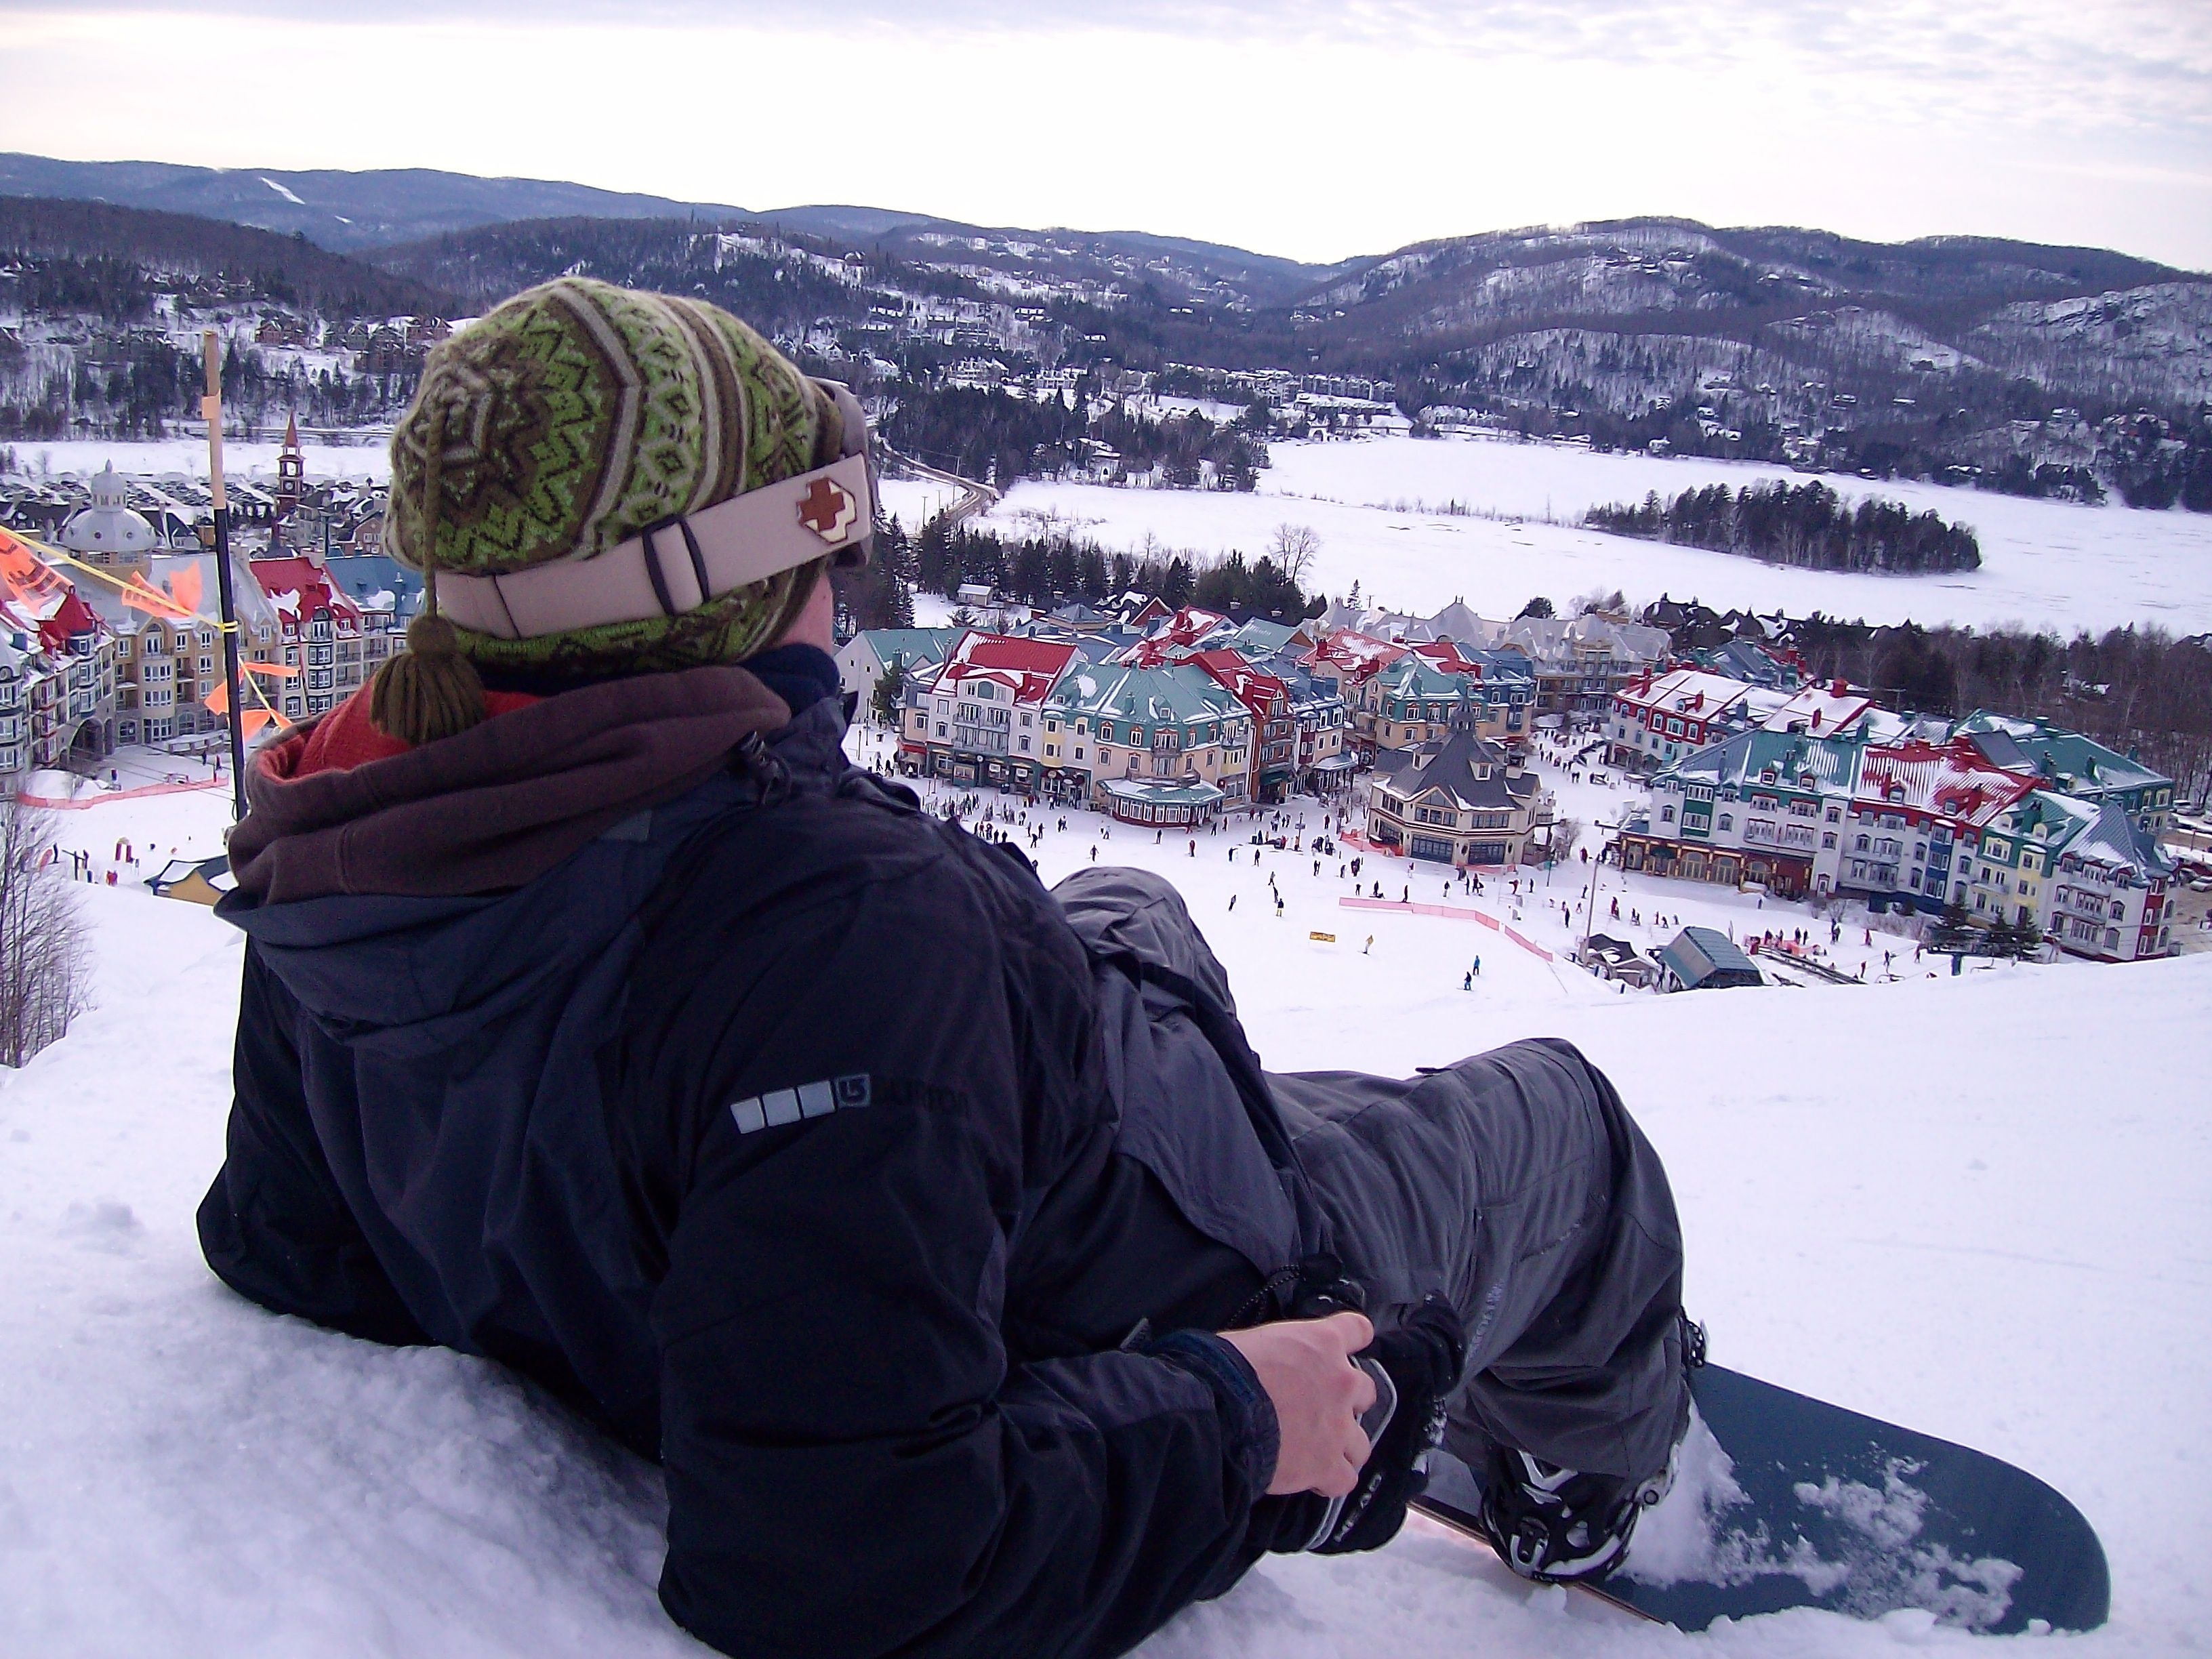 Winter Activities In Canada You Just Cannot Miss